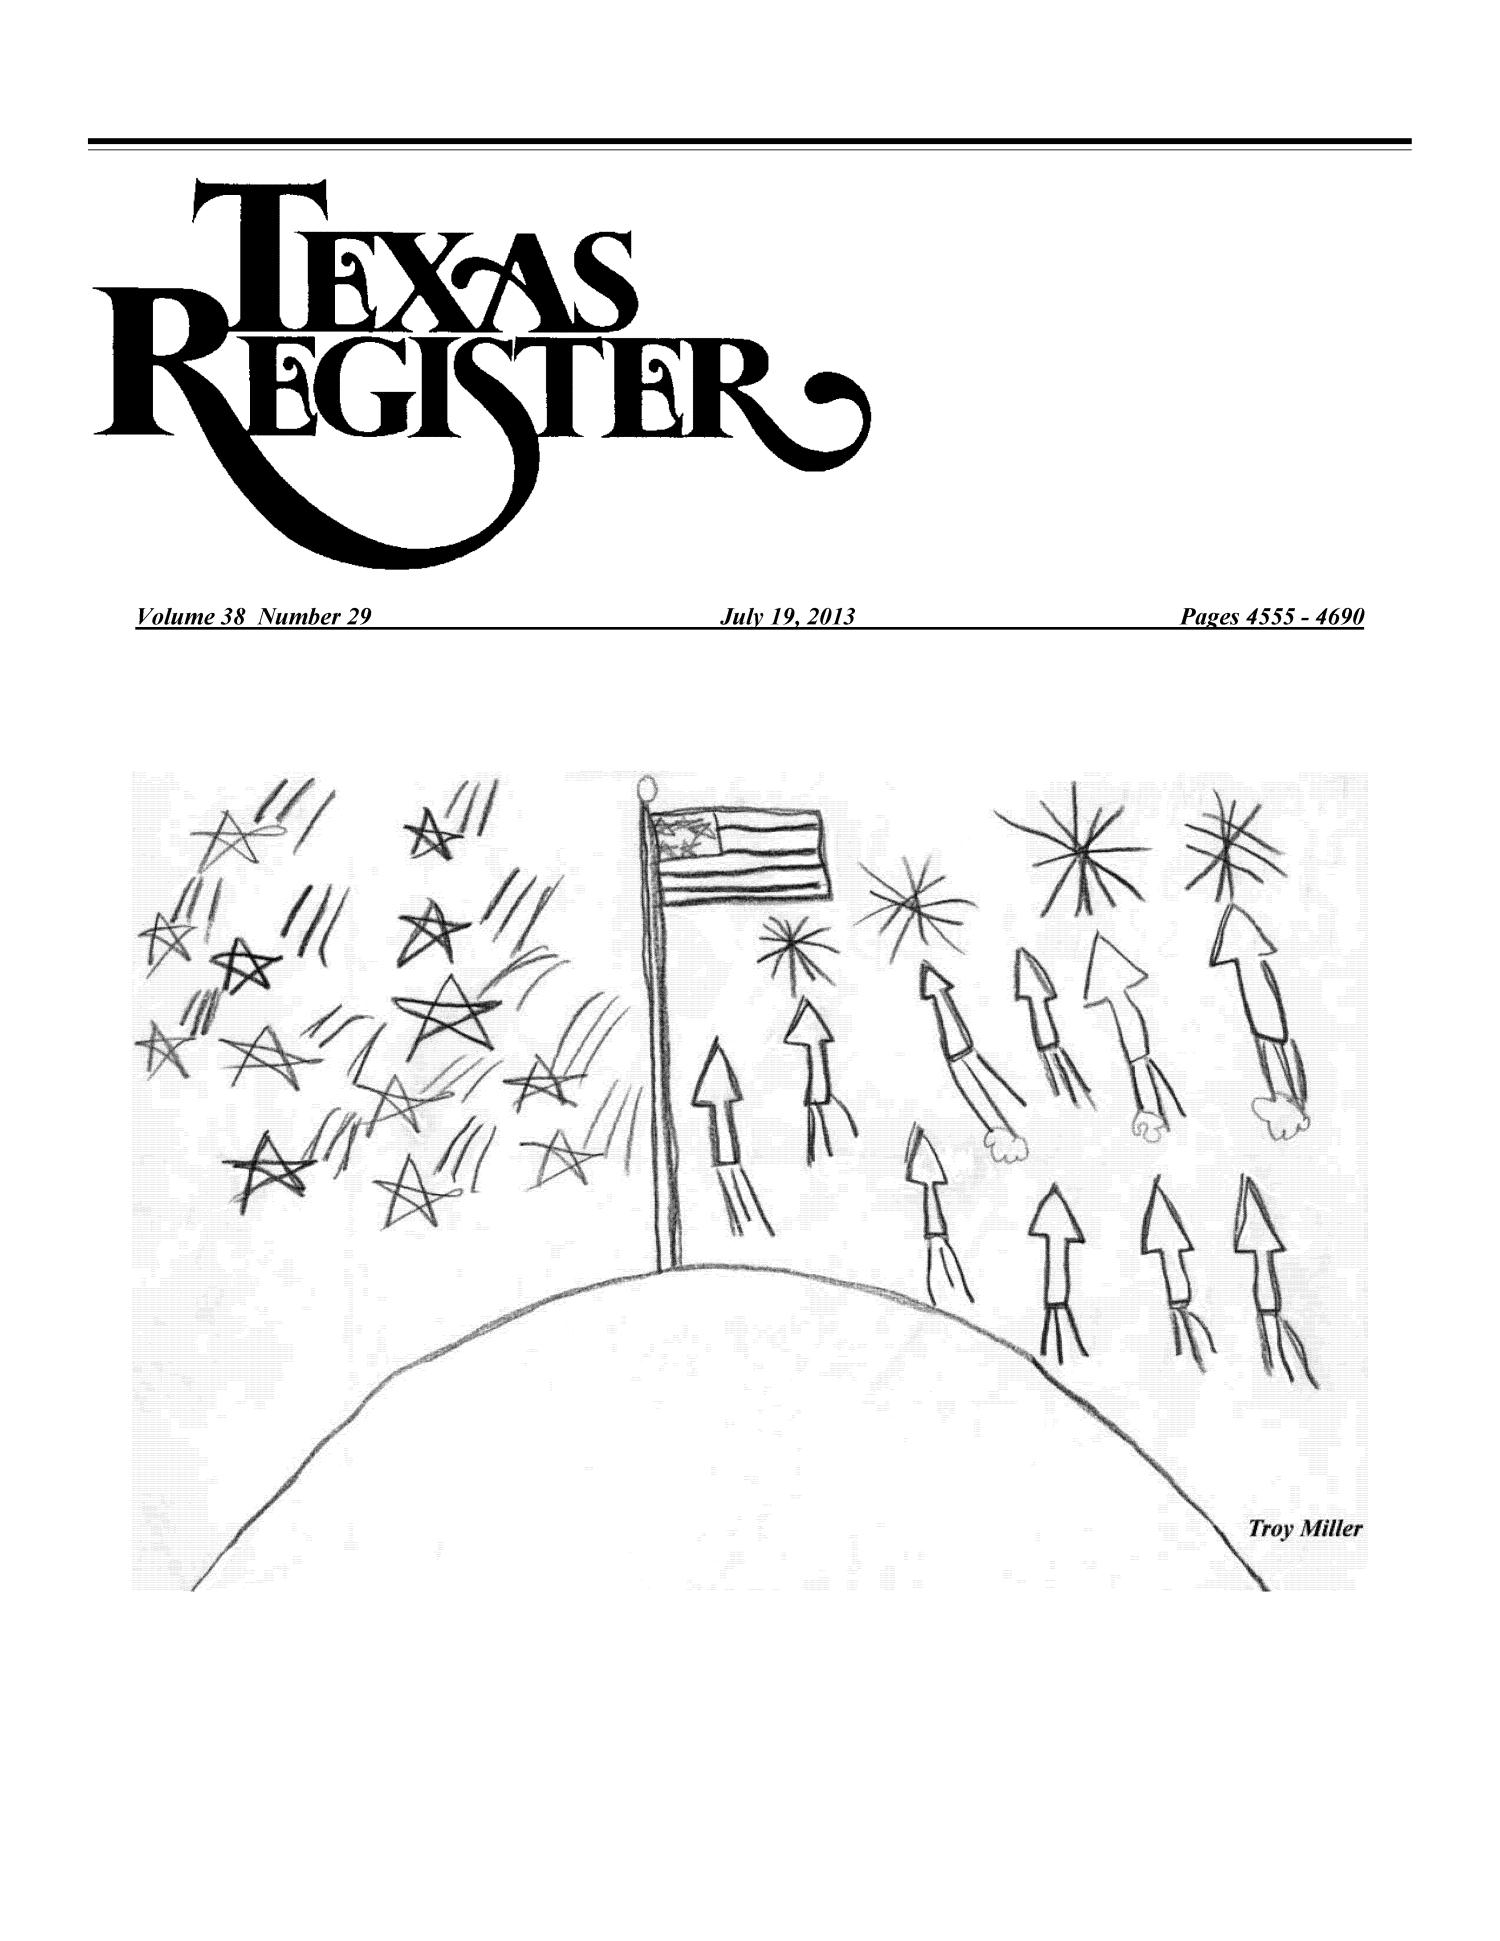 Texas Register, Volume 38, Number 29, Pages 4555-4690, July 19, 2013                                                                                                      Title Page